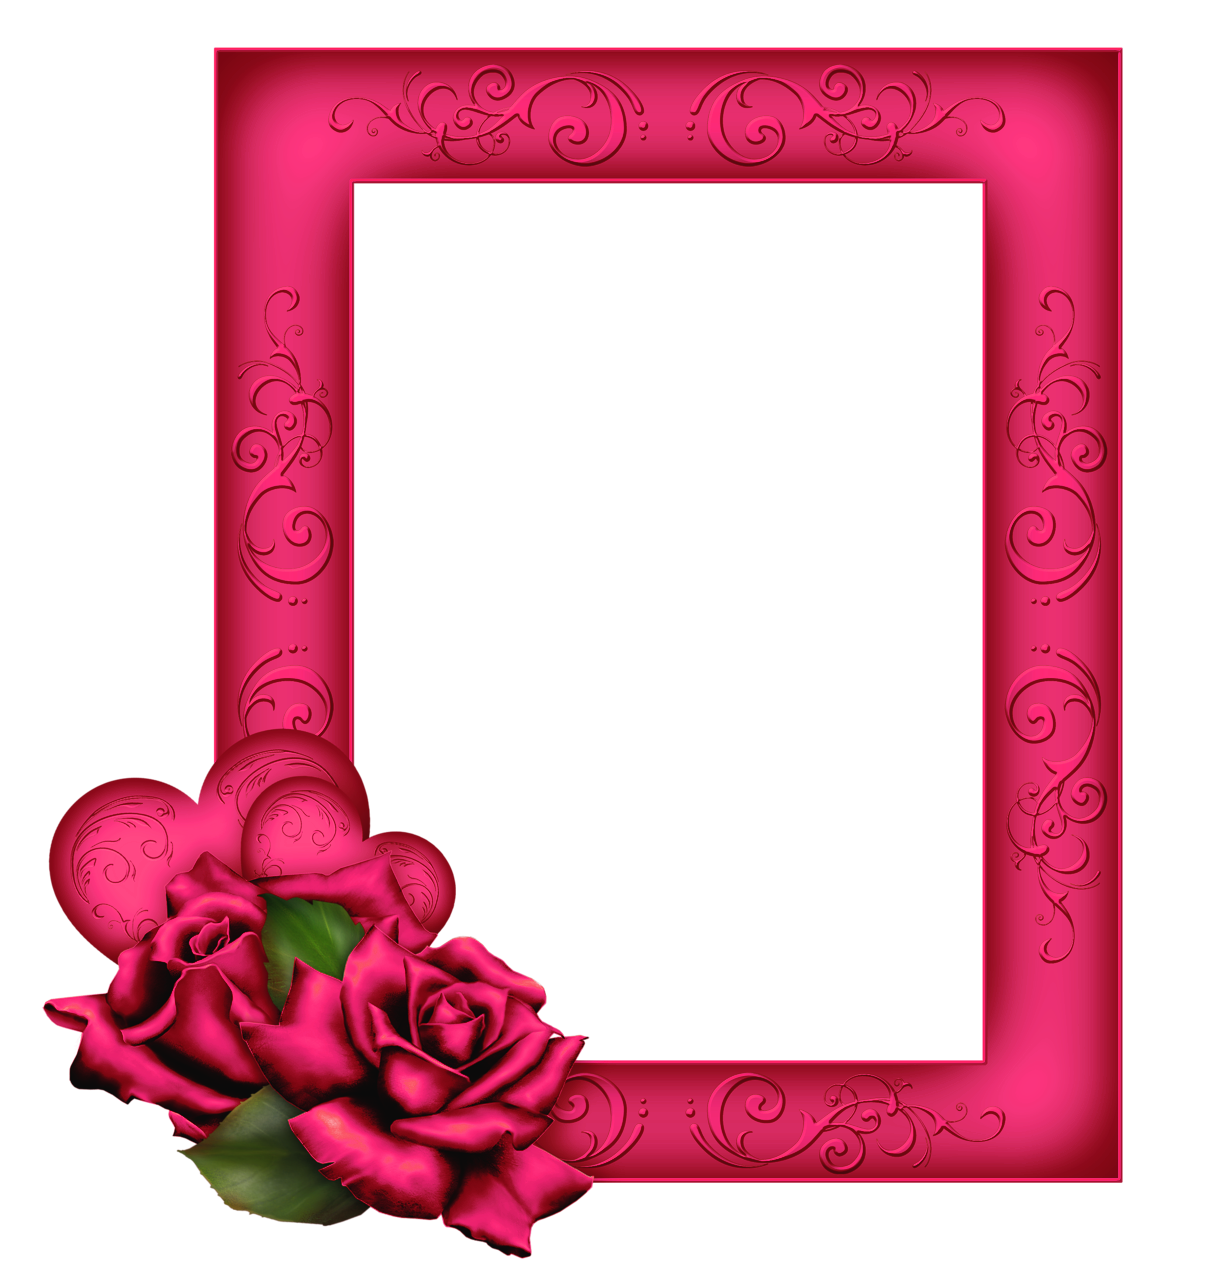 Pink frame png. Beautiful transparent with roses